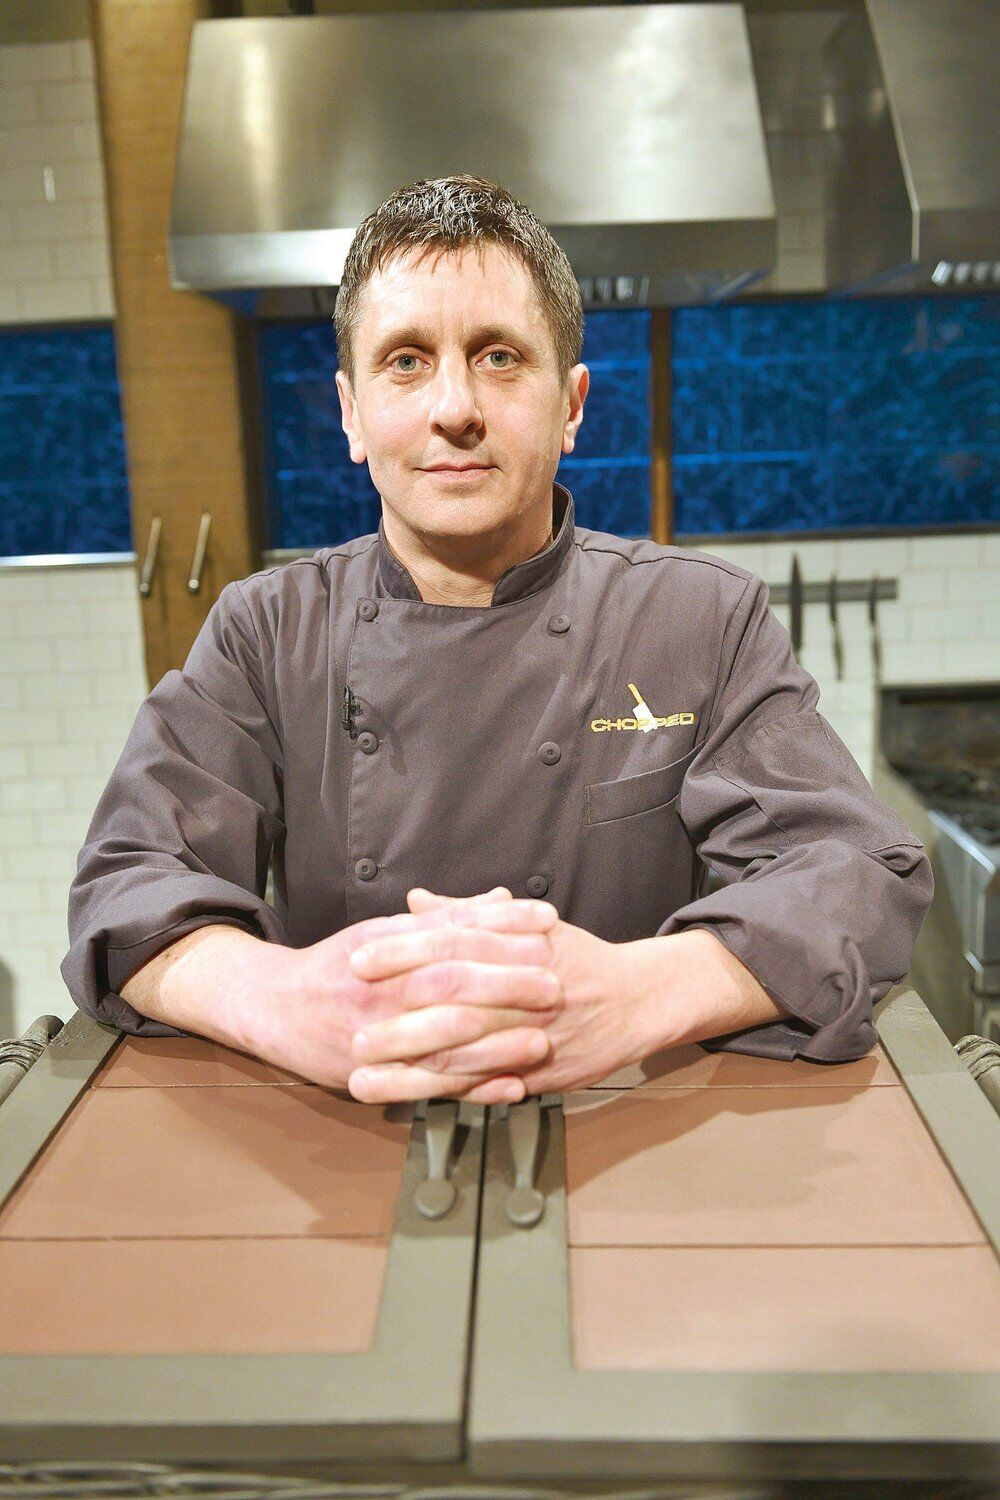 Kripalu chef appears on Food Network's 'Chopped'